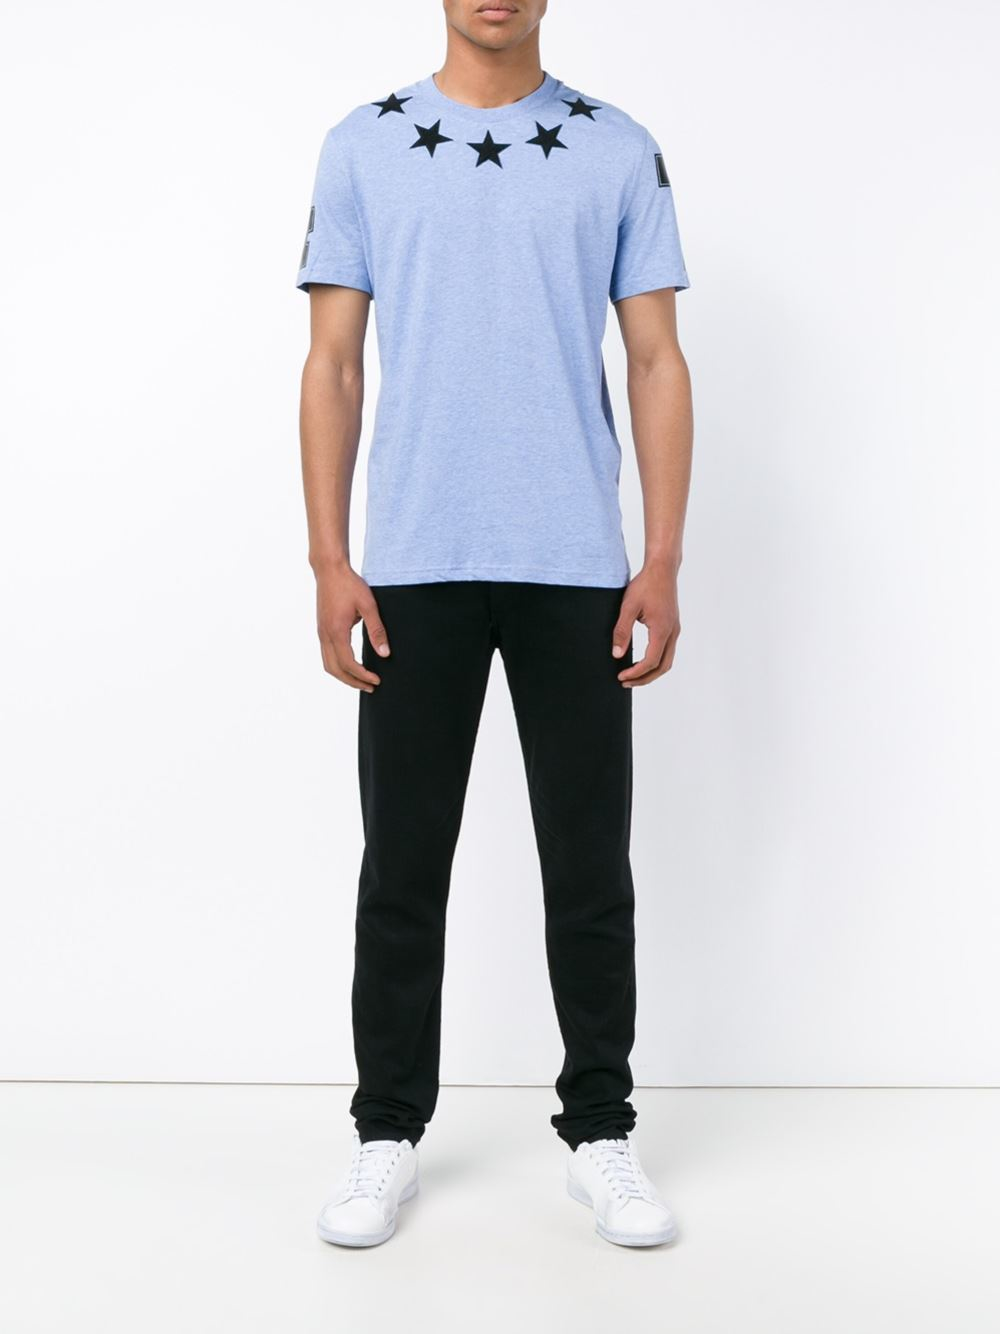 Givenchy star appliqu t shirt in blue for men lyst for Givenchy 5 star shirt